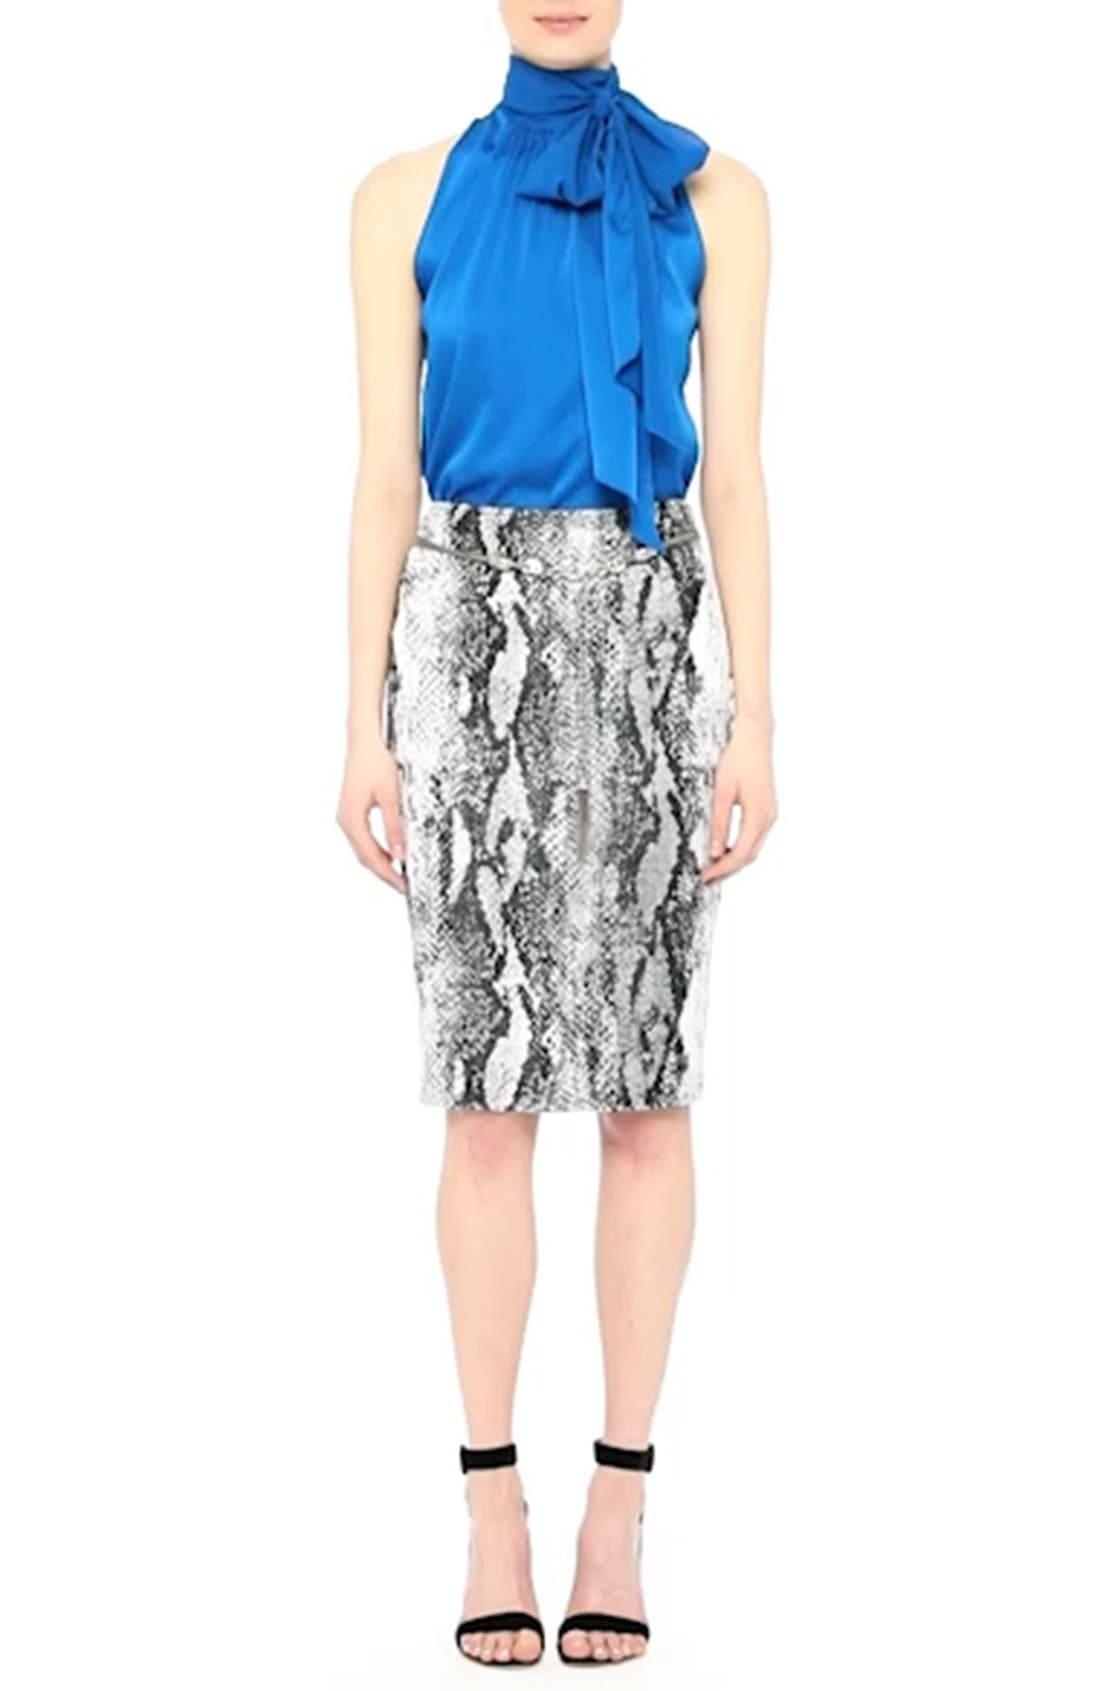 Raja Snakeskin Knit Pencil Skirt,                             Alternate thumbnail 7, color,                             050